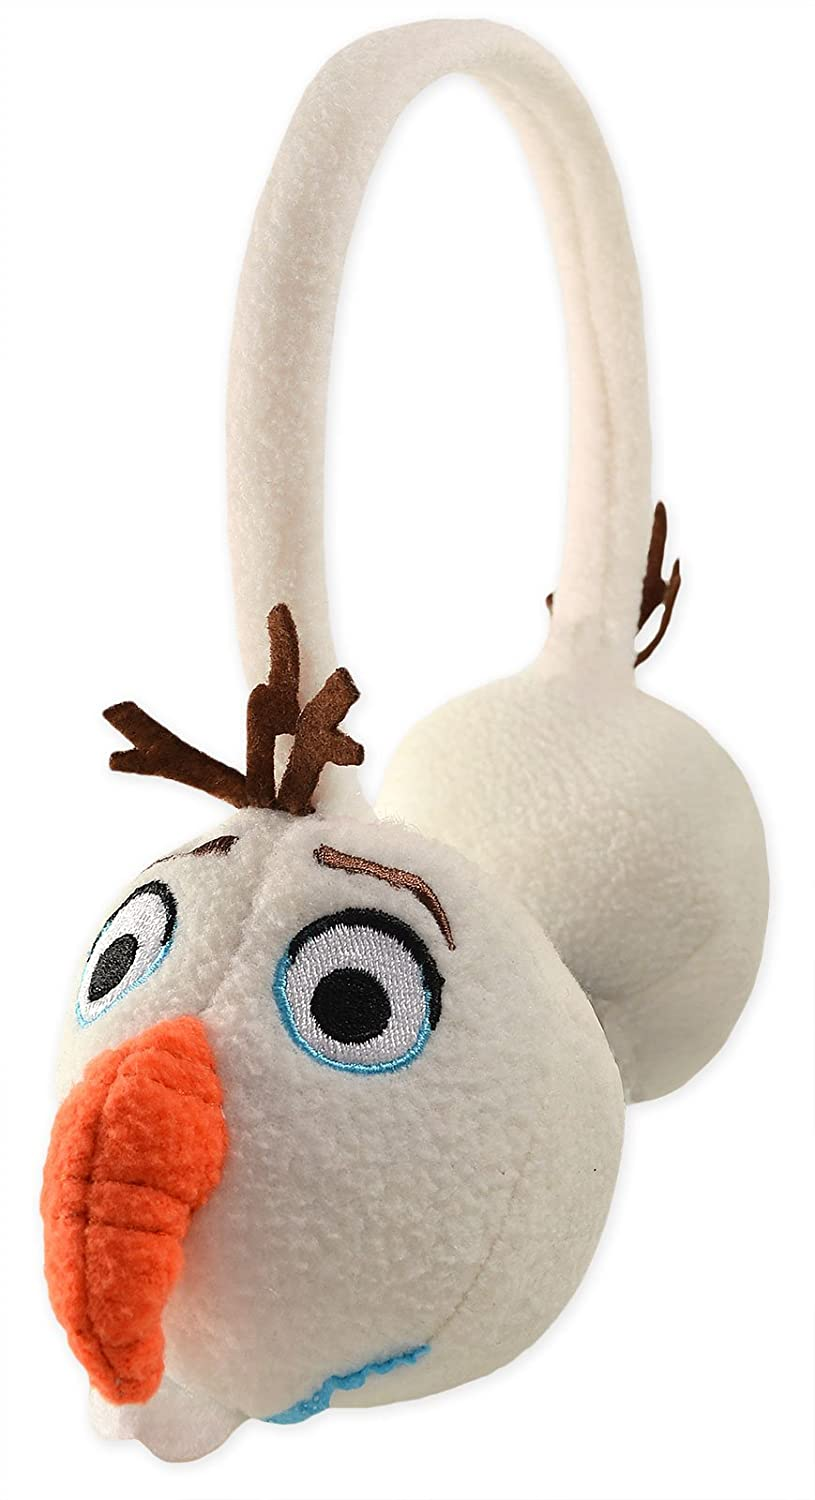 Bambini ufficiale Disney Frozen Olaf paraorecchie New Childrens Winter Ear Warmers o/s